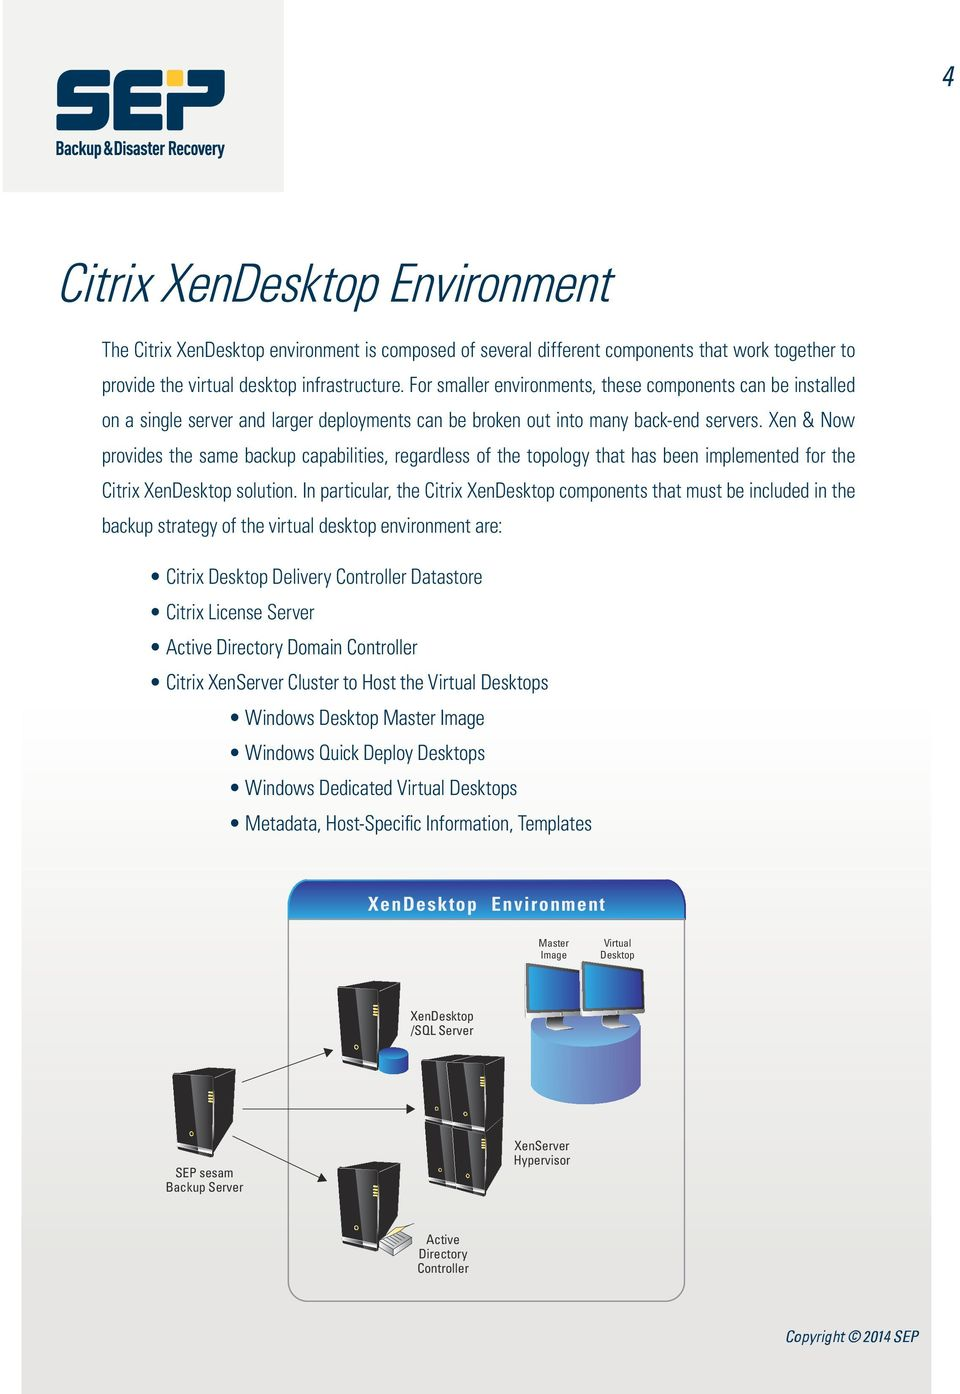 Xen & Now provides the same backup capabilities, regardless of the topology that has been implemented for the Citrix XenDesktop solution.